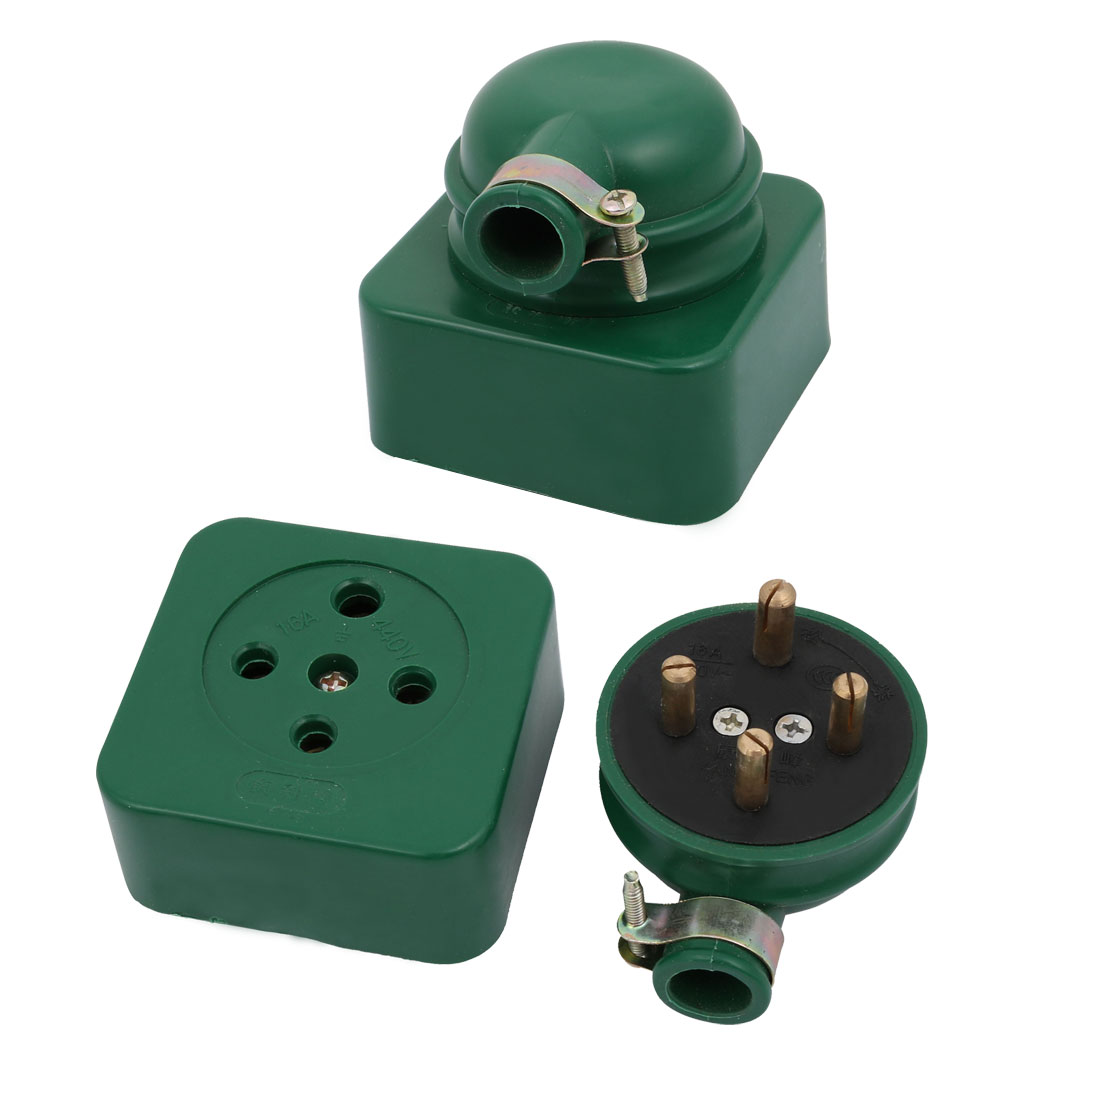 2 Pcs AC 440V 16A Three Phase Four Wire 3P 4W Industrial Socket Set Green